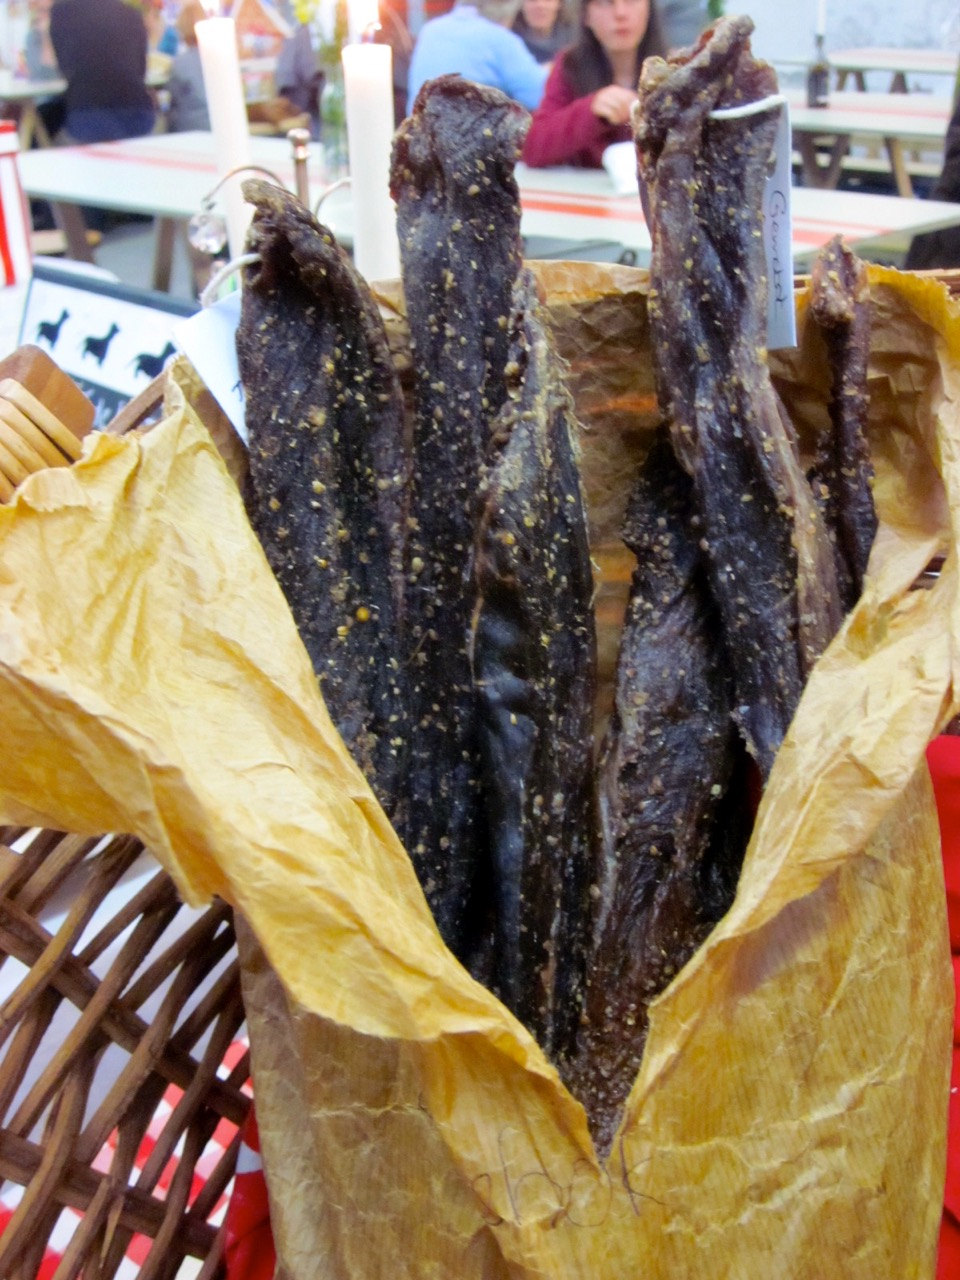 biltong pic - blue bird garage